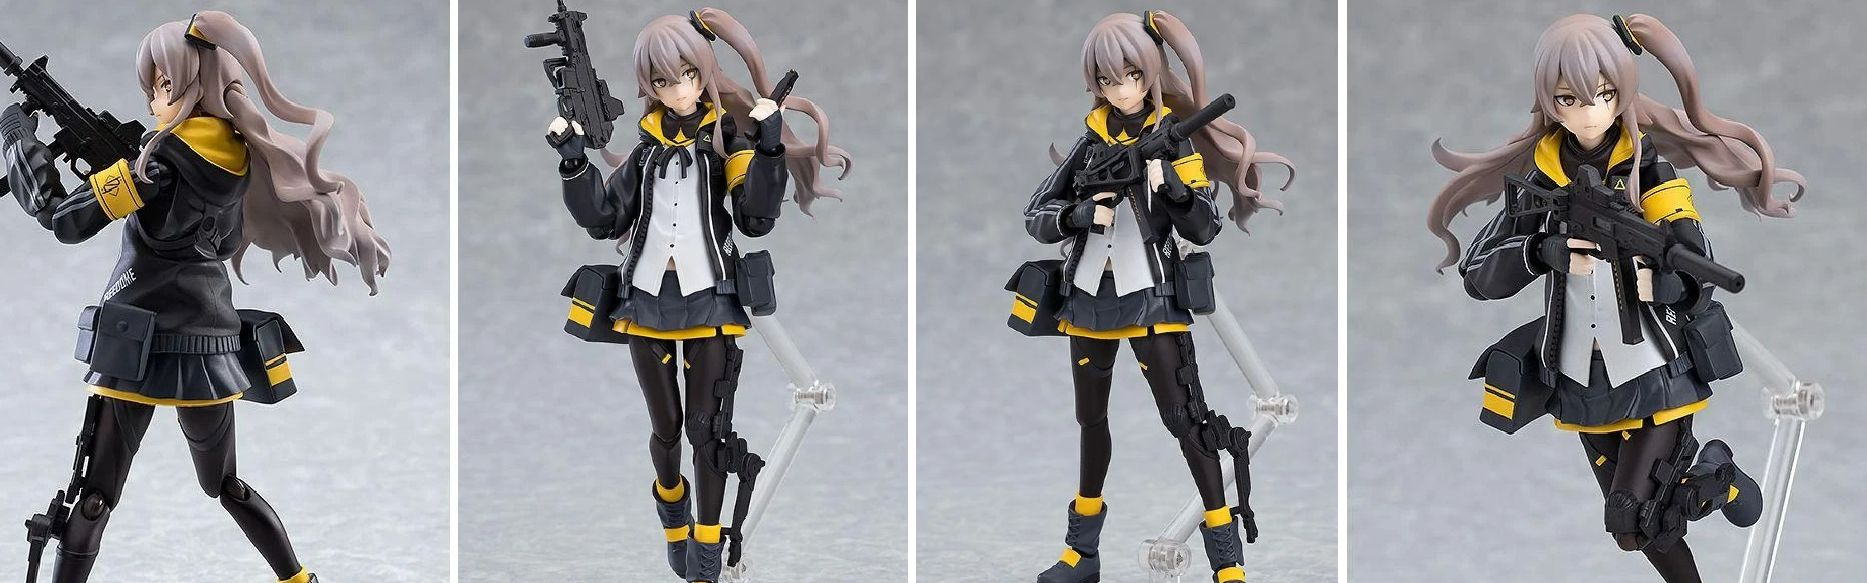 girls-frontline-figma-action-figure-ump45